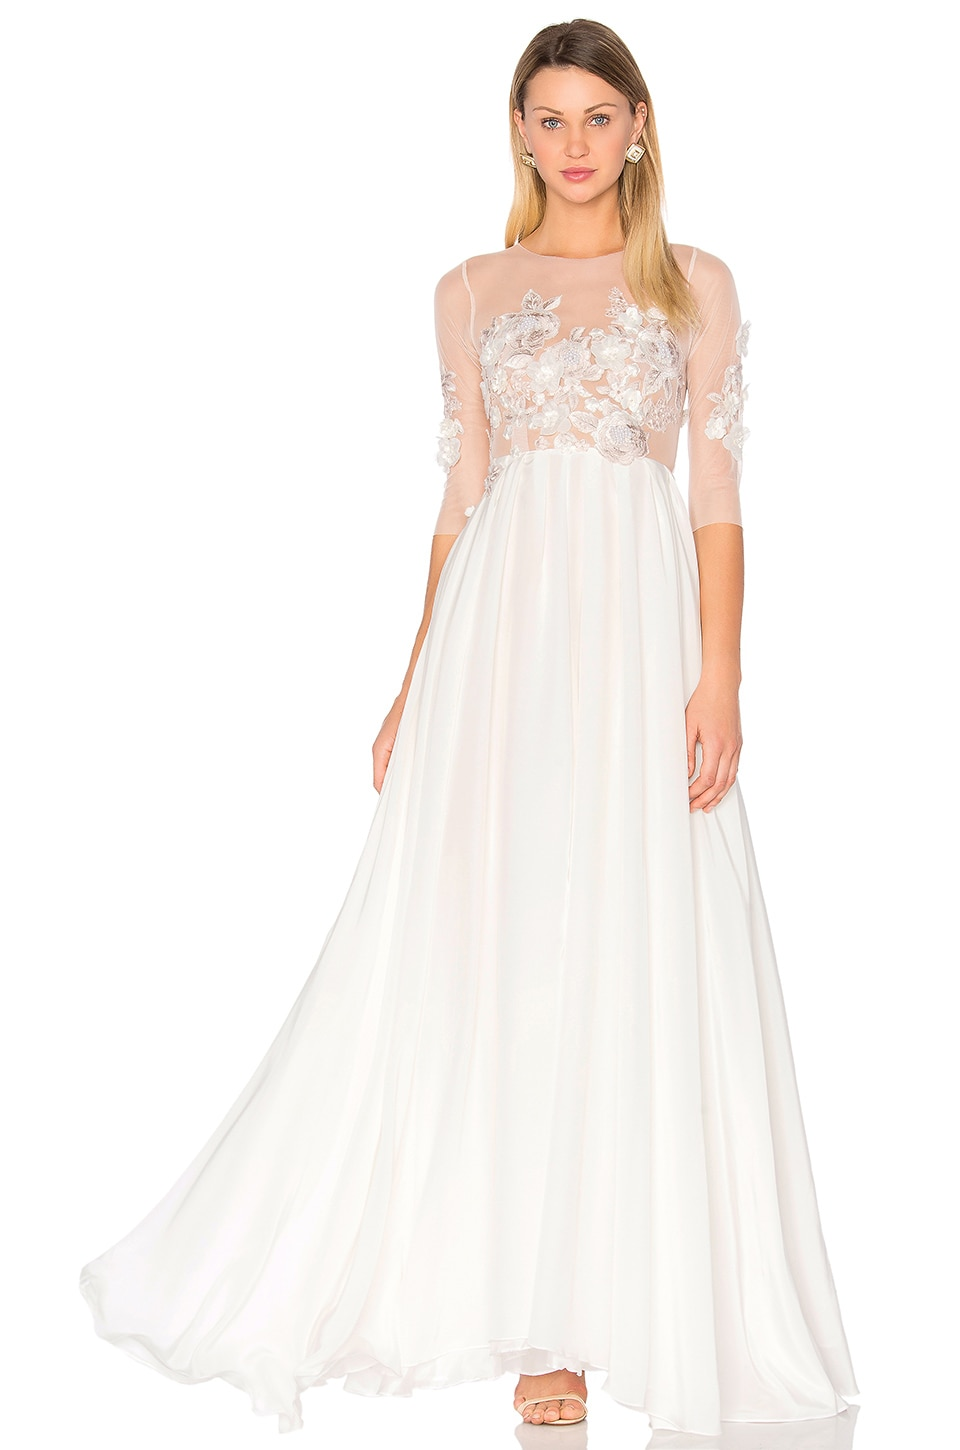 Lurelly Celine Gown in Off White